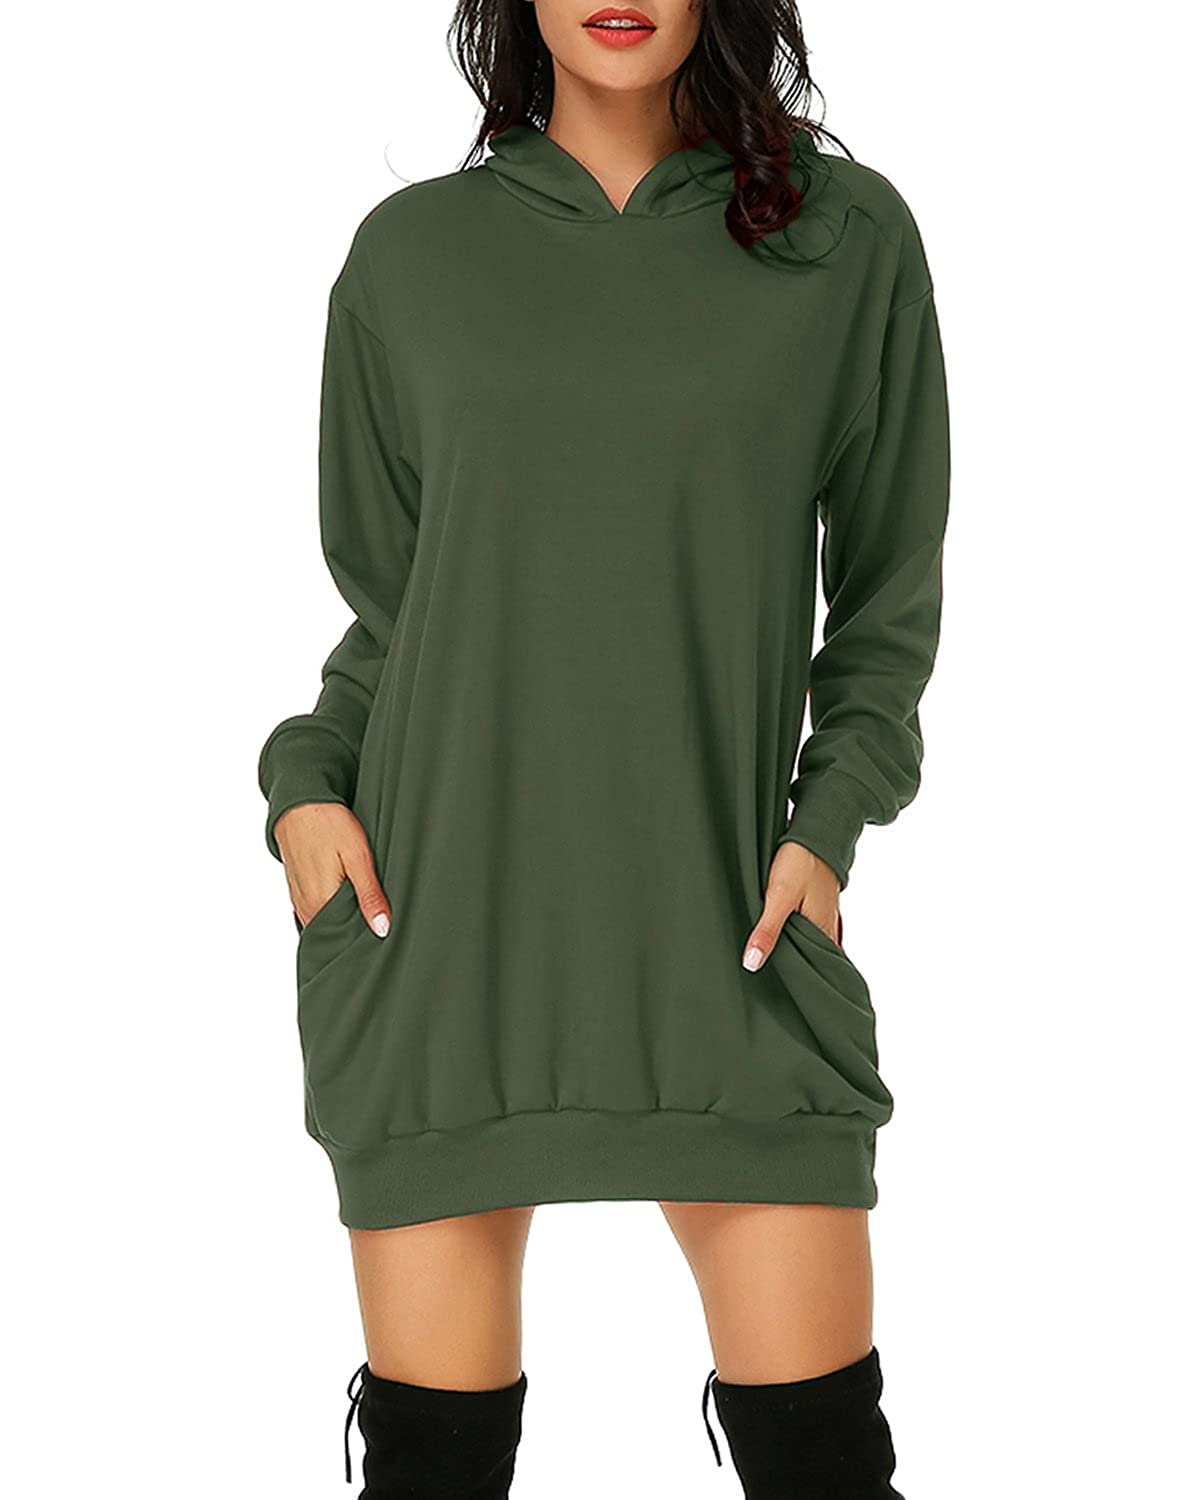 836189d5f Auxo Women's Long Sleeve Hooded Pockets Pullover Hoodie Dress Tunic  Sweatshirt Army Green US 14/ASIAN/2XL at Amazon Women's Clothing store: